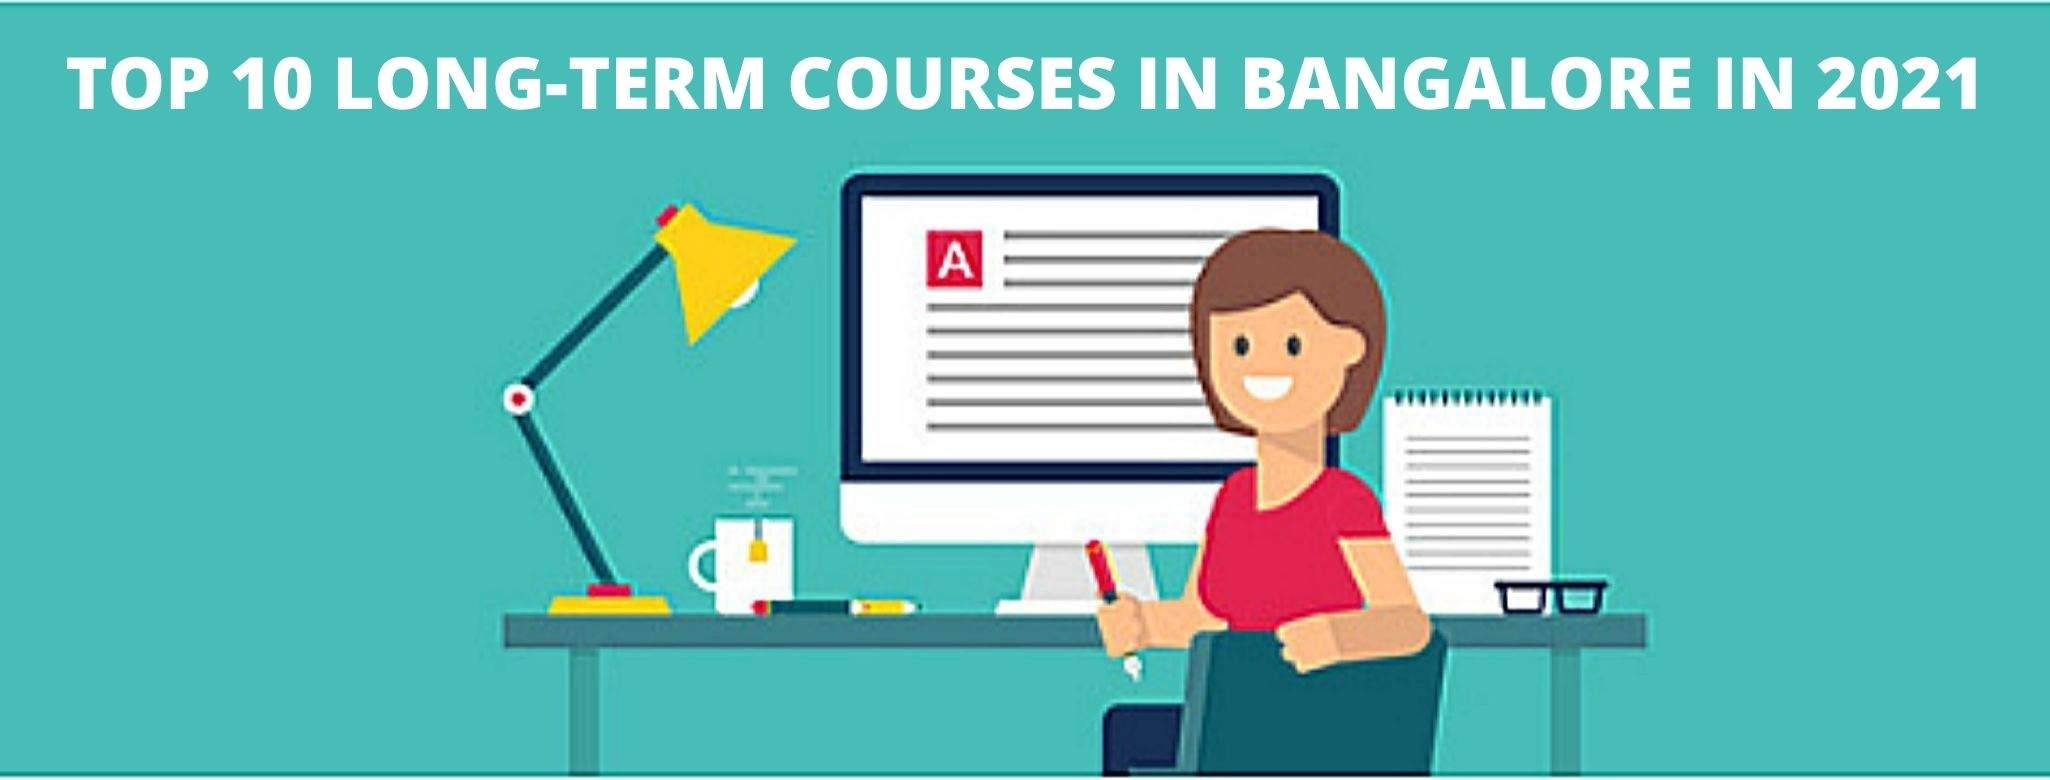 The image highlights the top 10 long-term courses in Bangalore